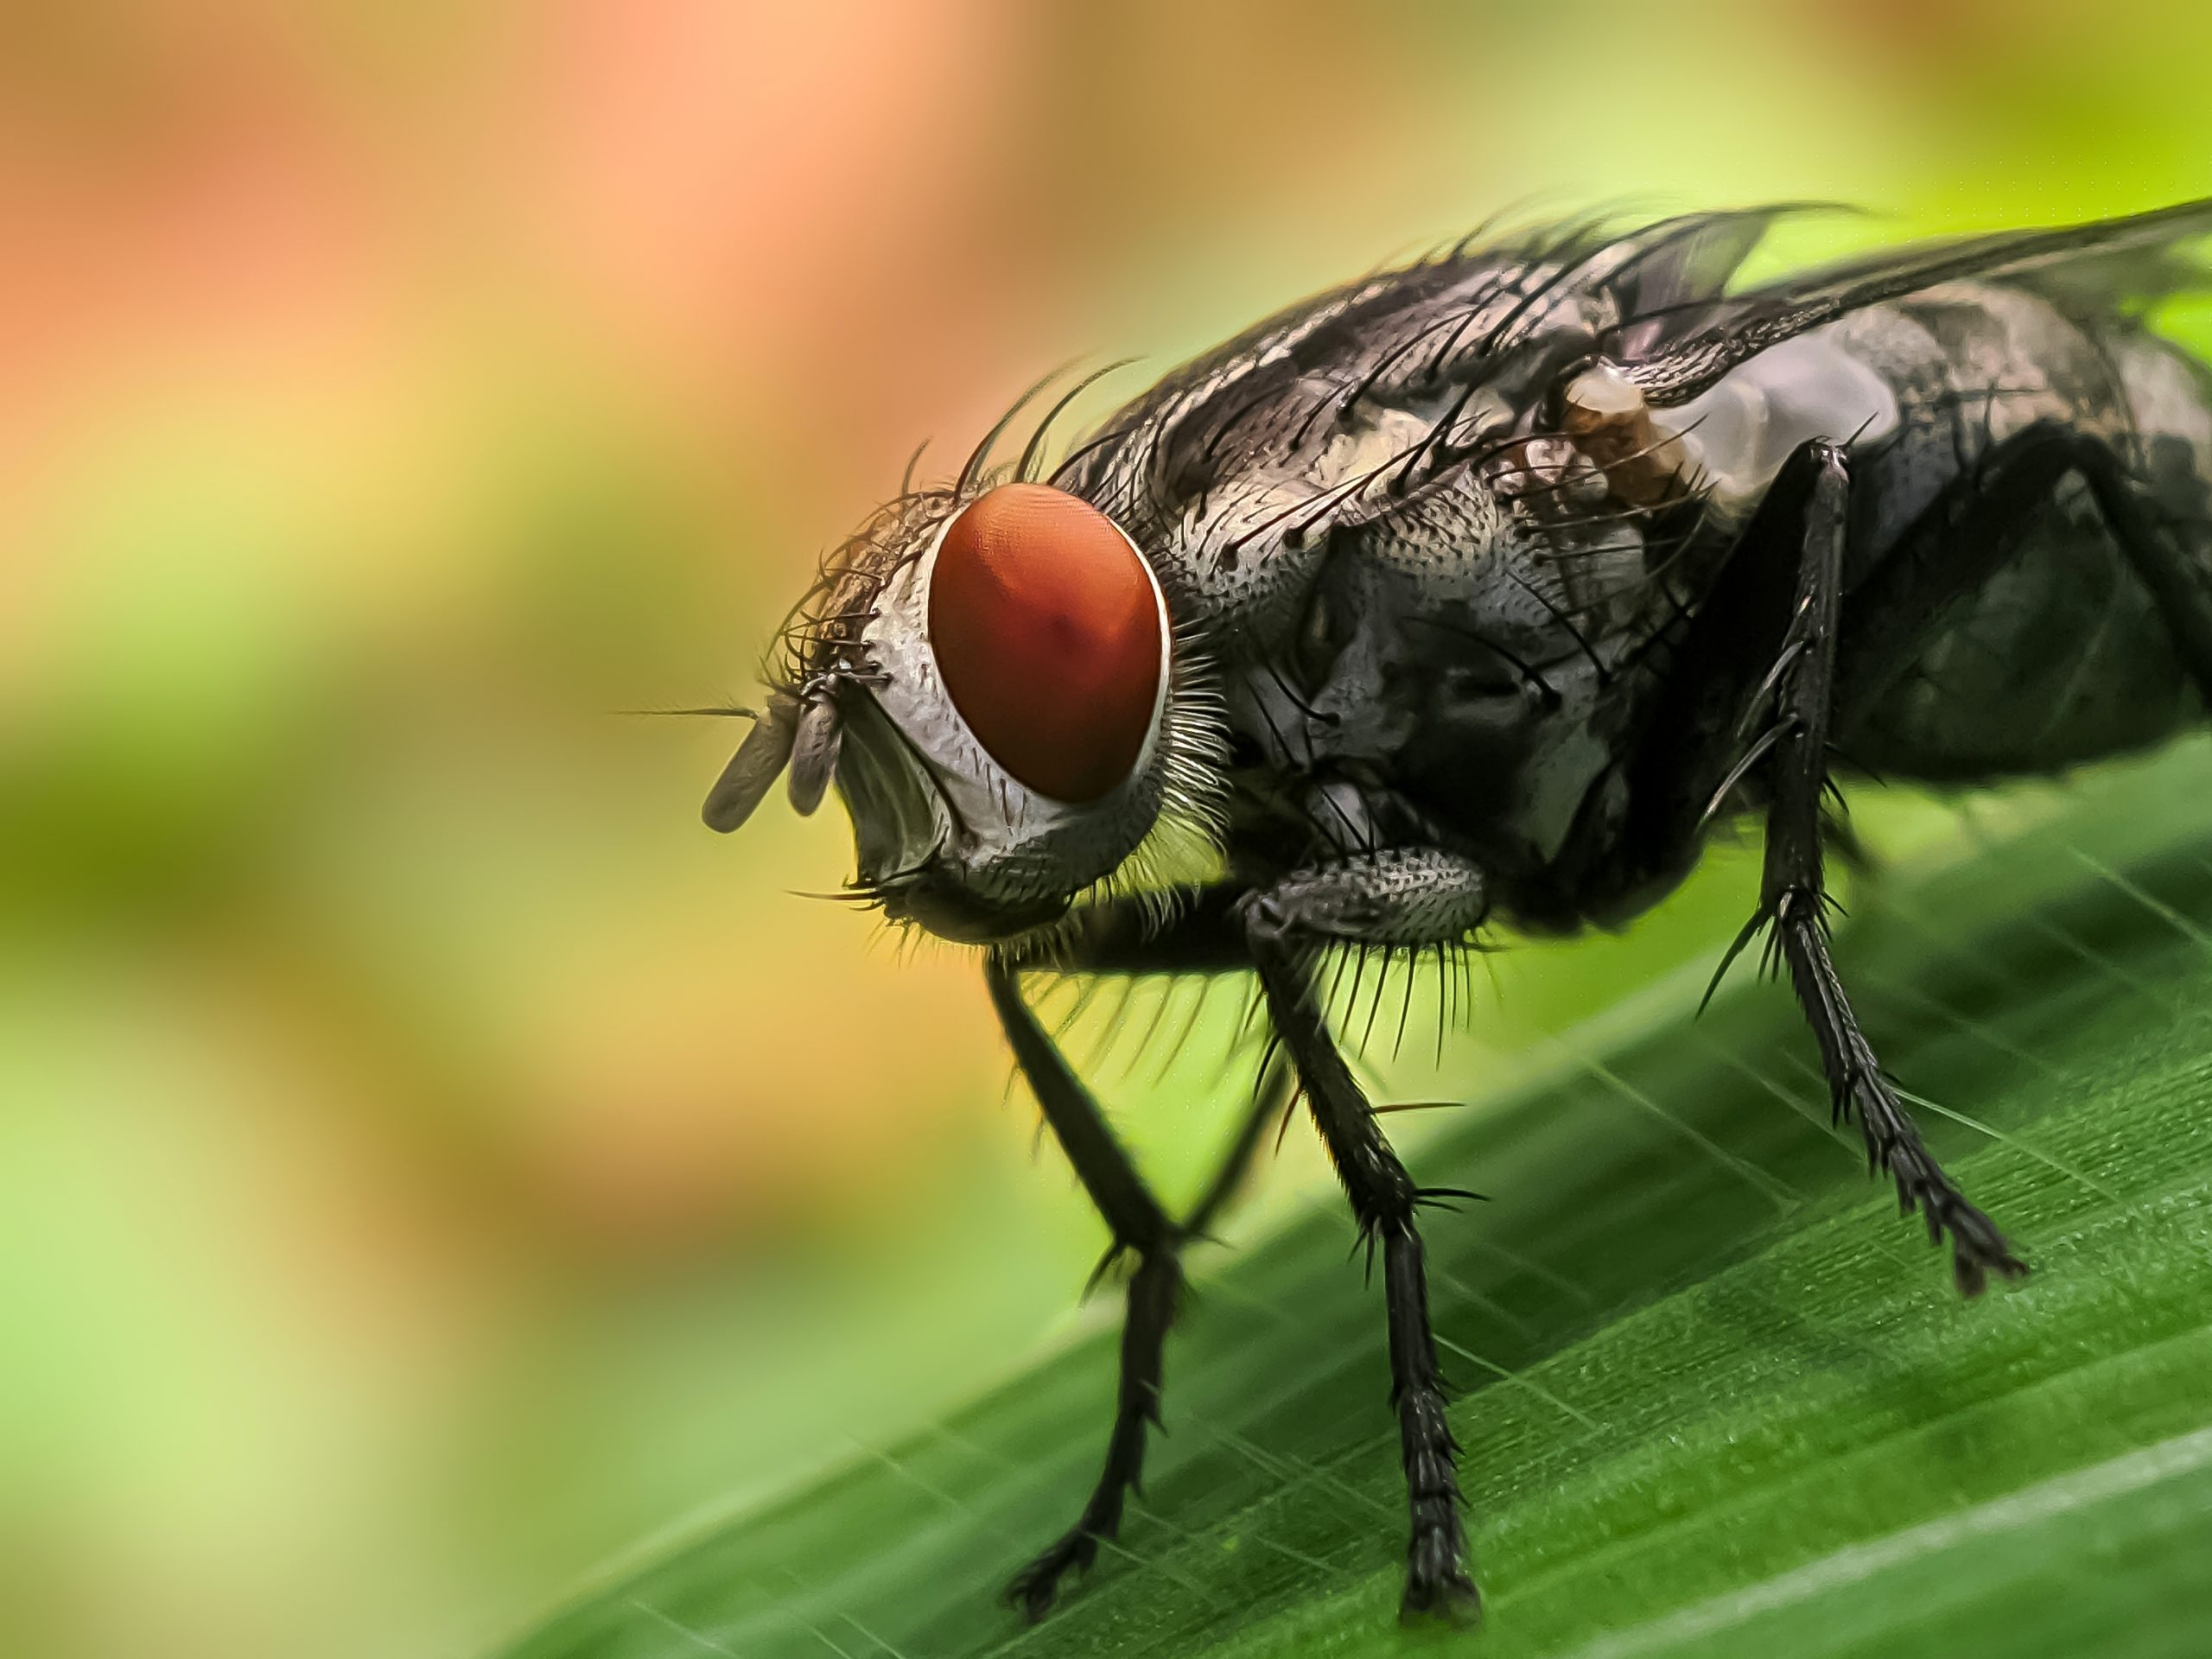 A housefly sitting on a plant